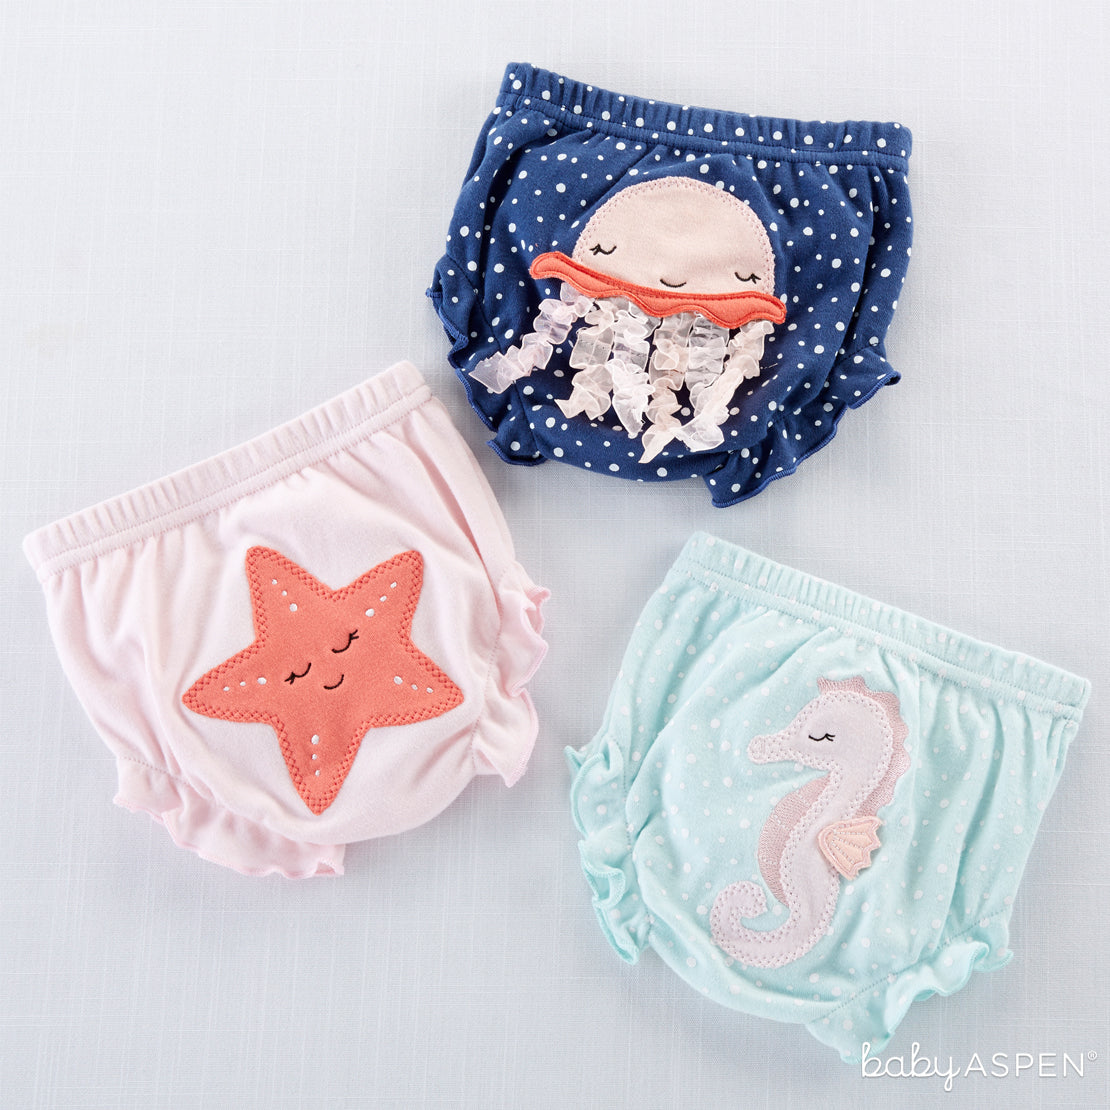 Assortment of Under The Sea 3-Piece Diaper Covers - Girl | Brilliant Beach Baby Gifts + A Giveaway | Baby Aspen